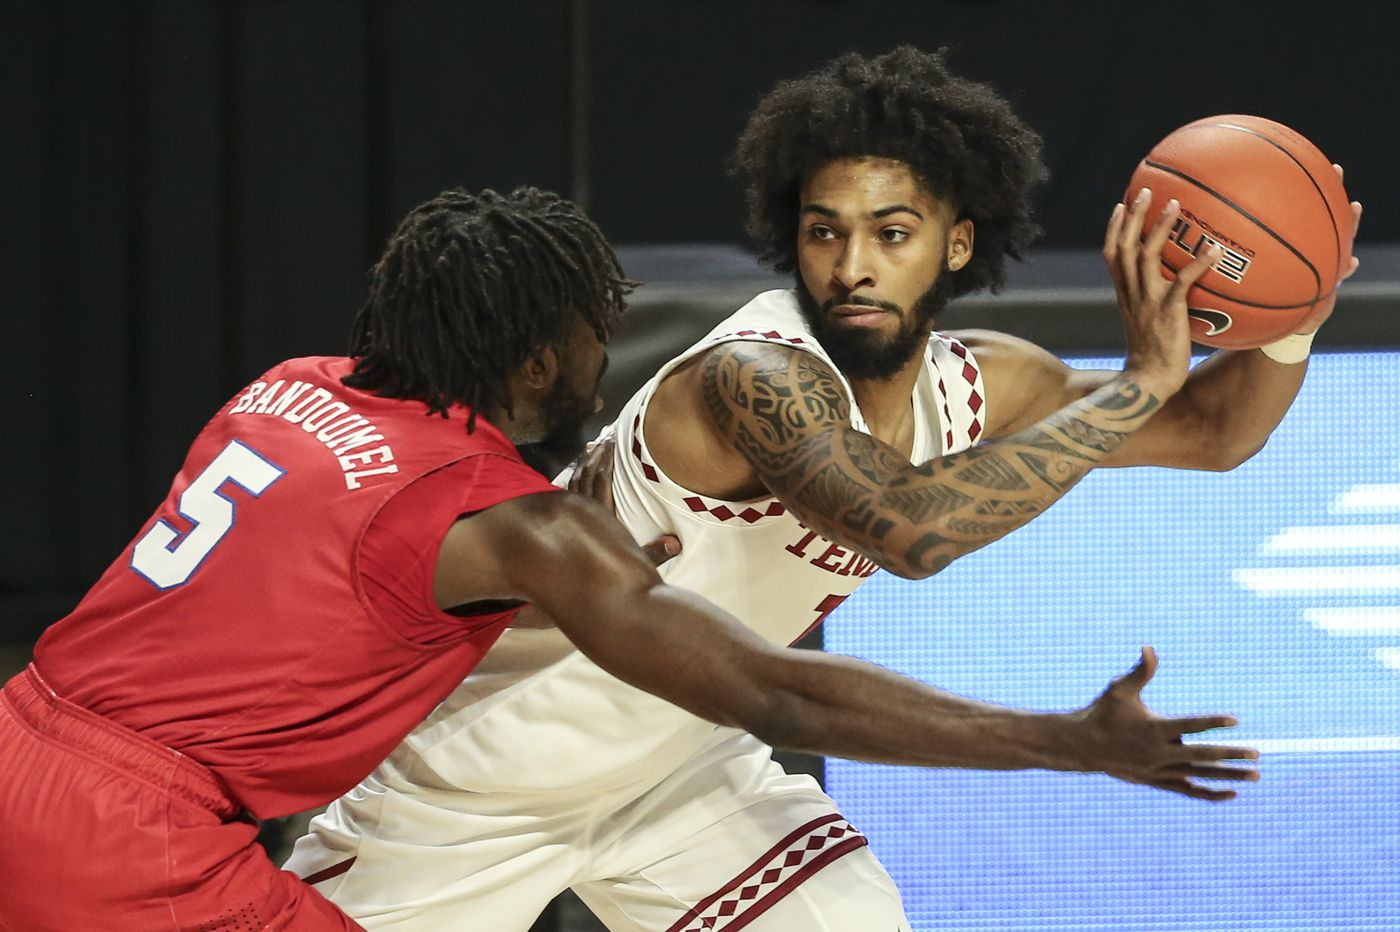 Temple returning from COVID pause with rematch vs. SMU | Preview